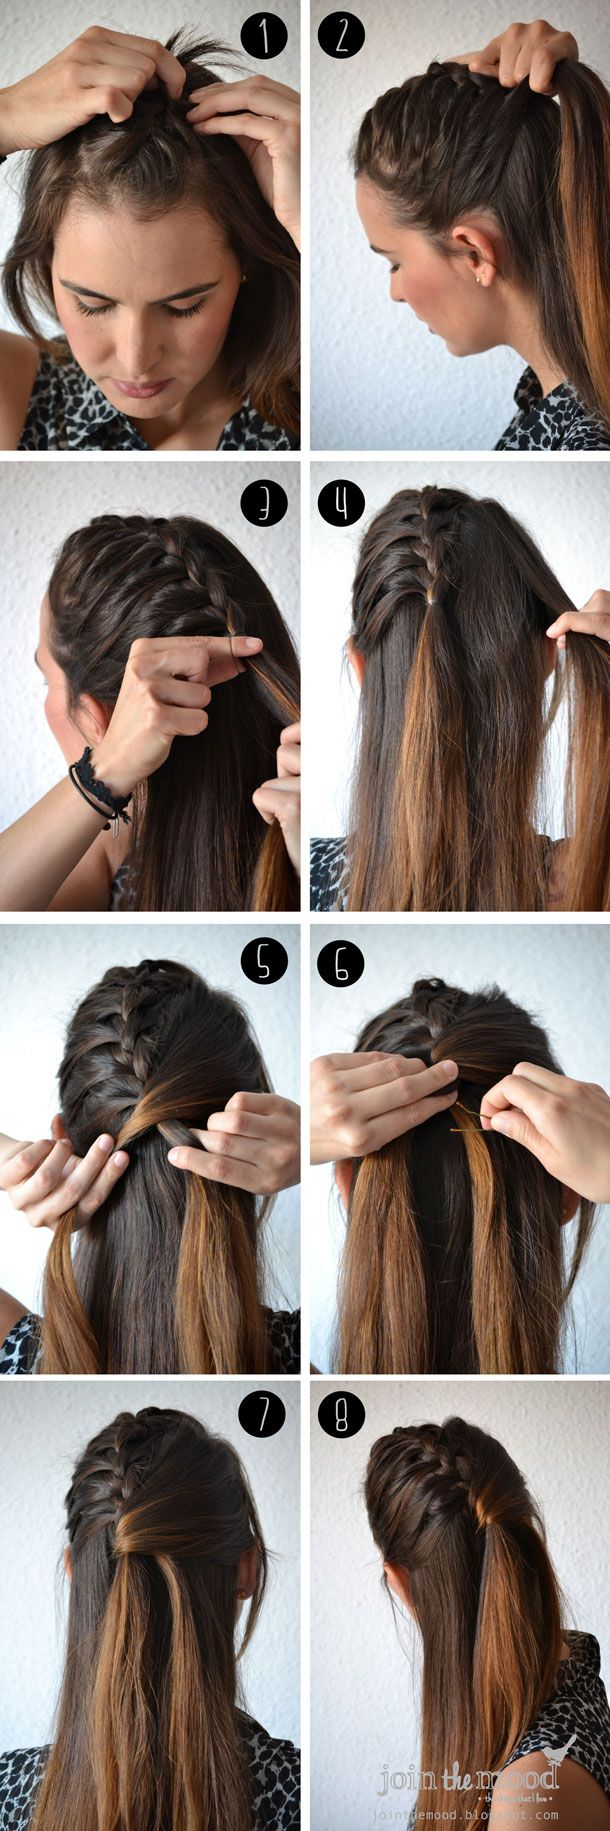 Join the mood semi collacted braid cool hair ideaus pinterest